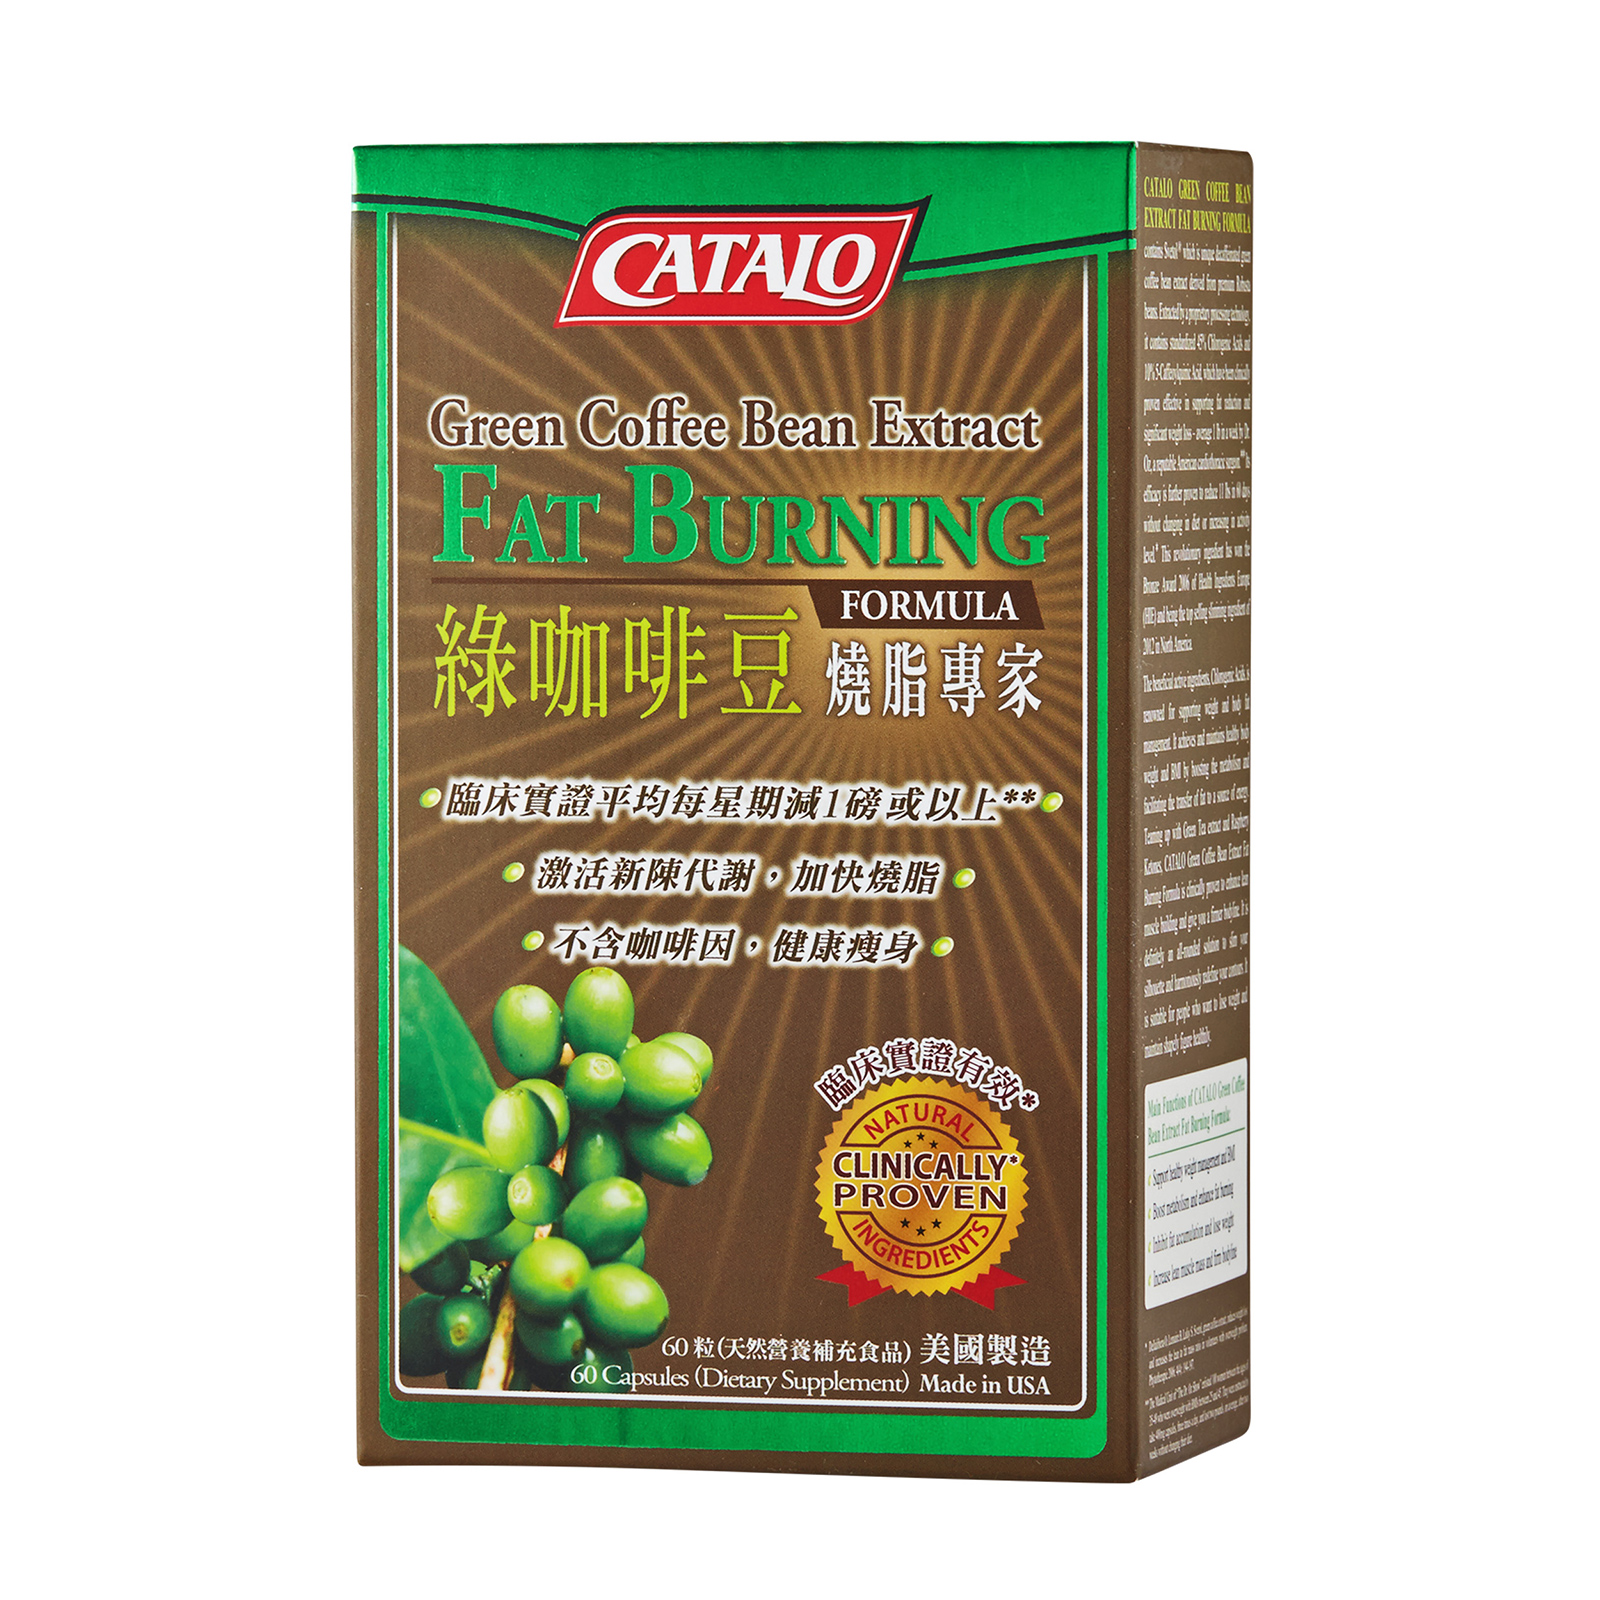 CATALO Green Coffee Bean Extract Fat Burning Formula 60capsules,